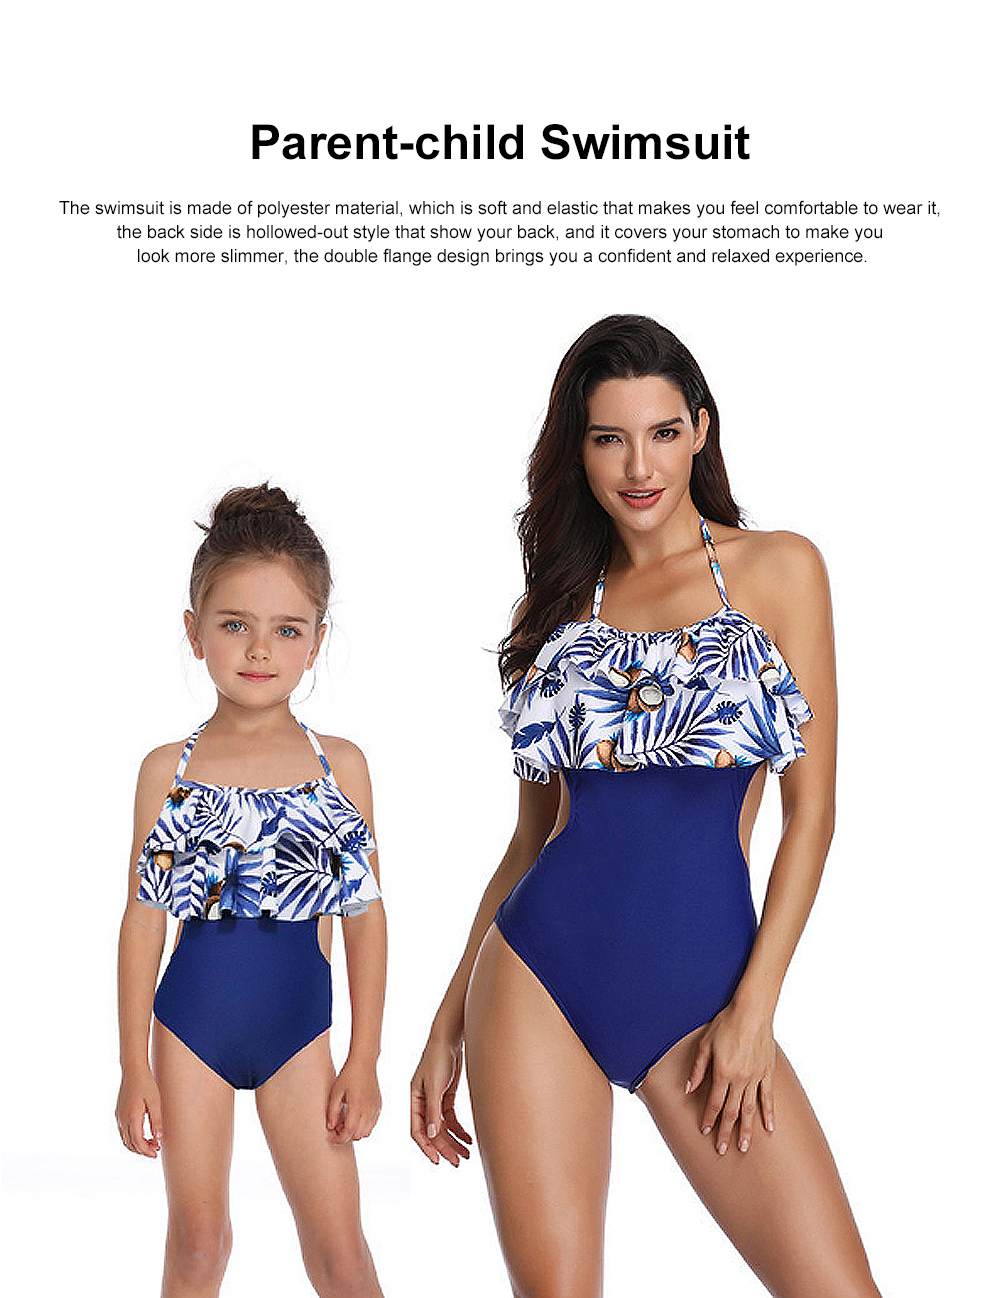 Double Flange Swim Dress Soft One-piece Swimsuit with Strap Off Shoulder Bathing Suit for Mother-girl 0